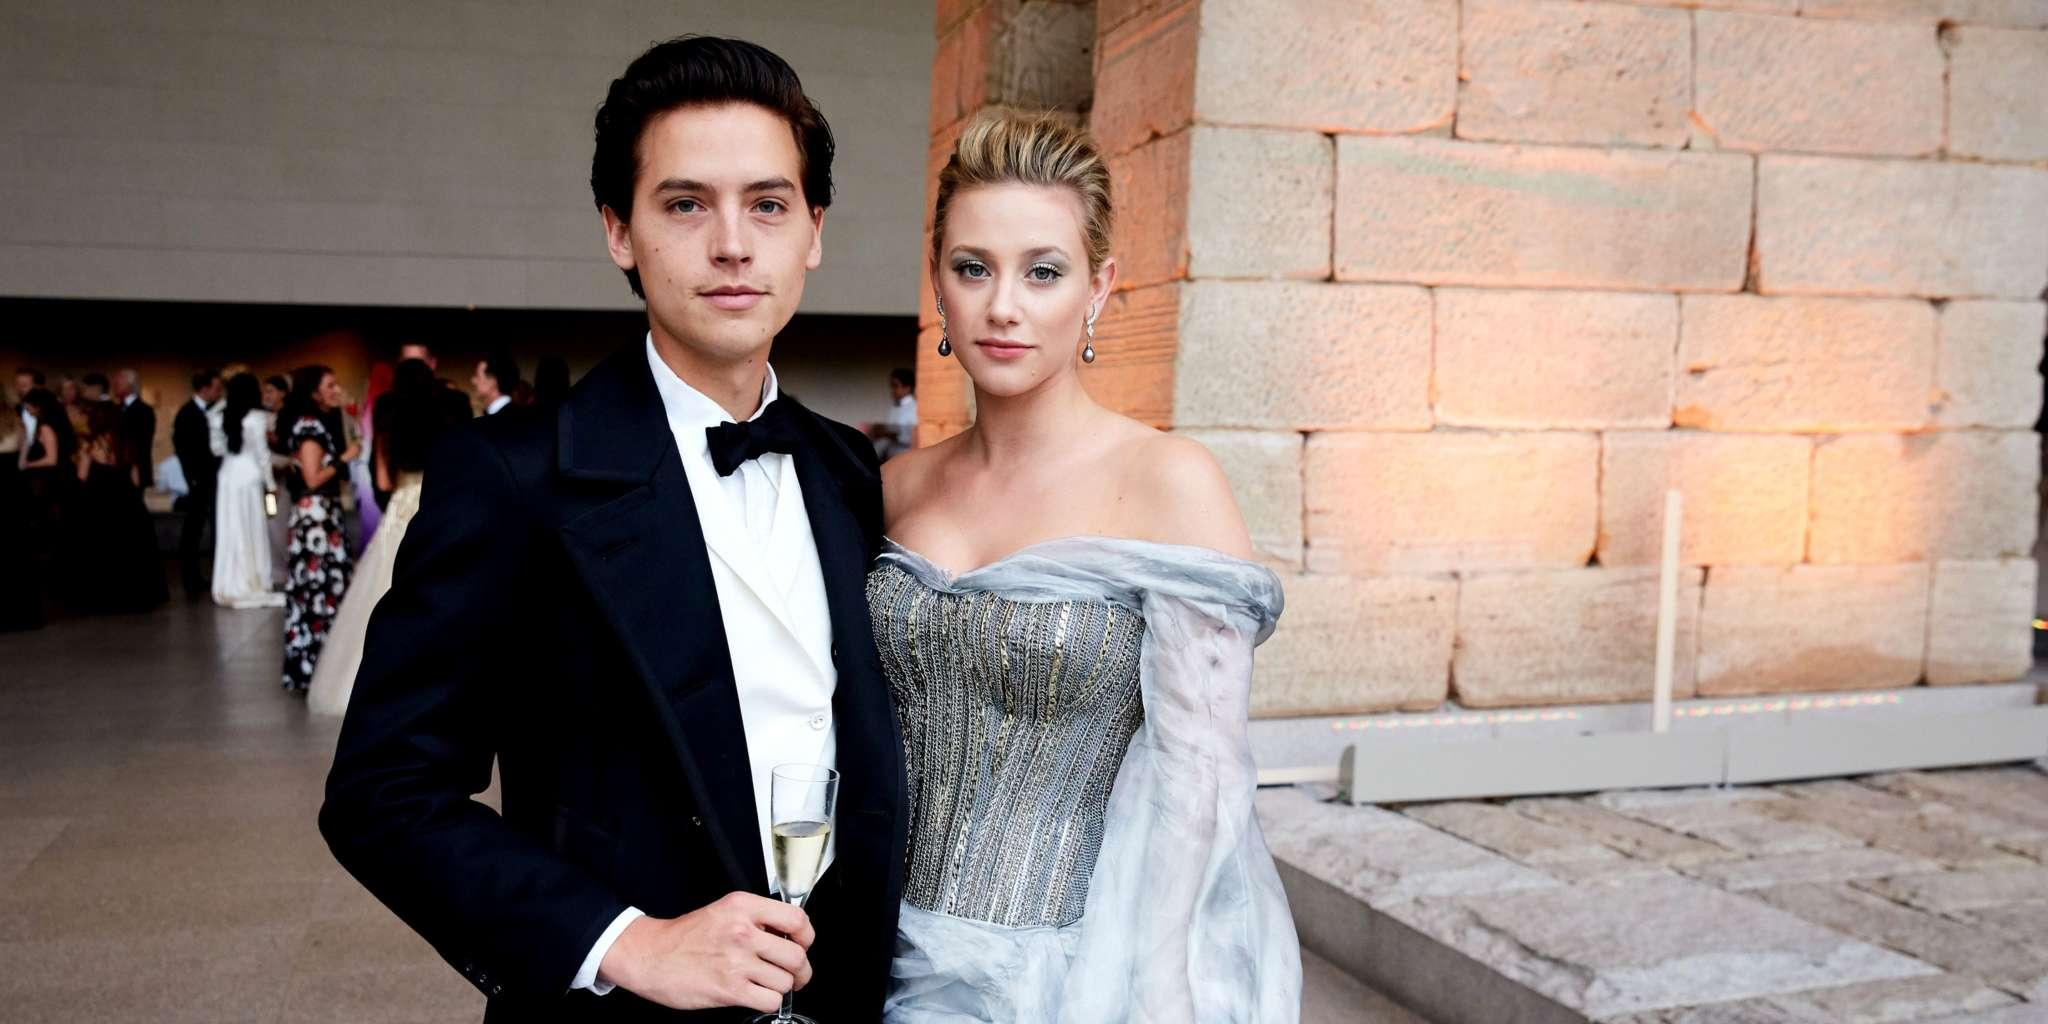 Lili Reinhart Sets Things Straight After 'Clickbait' Headline About Cole Sprouse Split